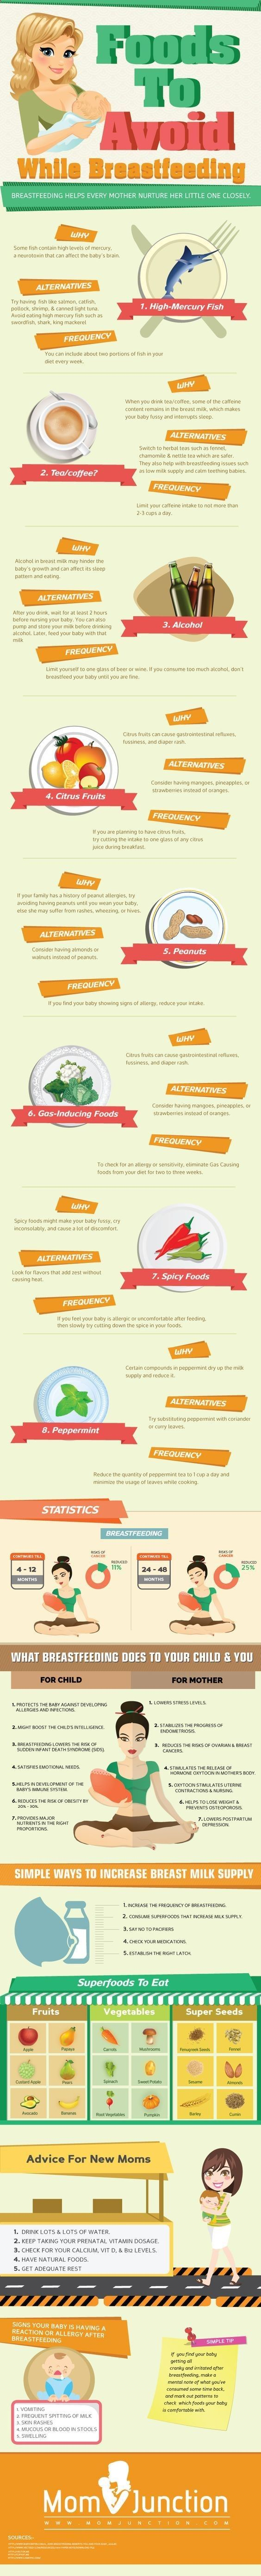 Are There Any Foods To Avoid While Breastfeeding? #Breastfeeding